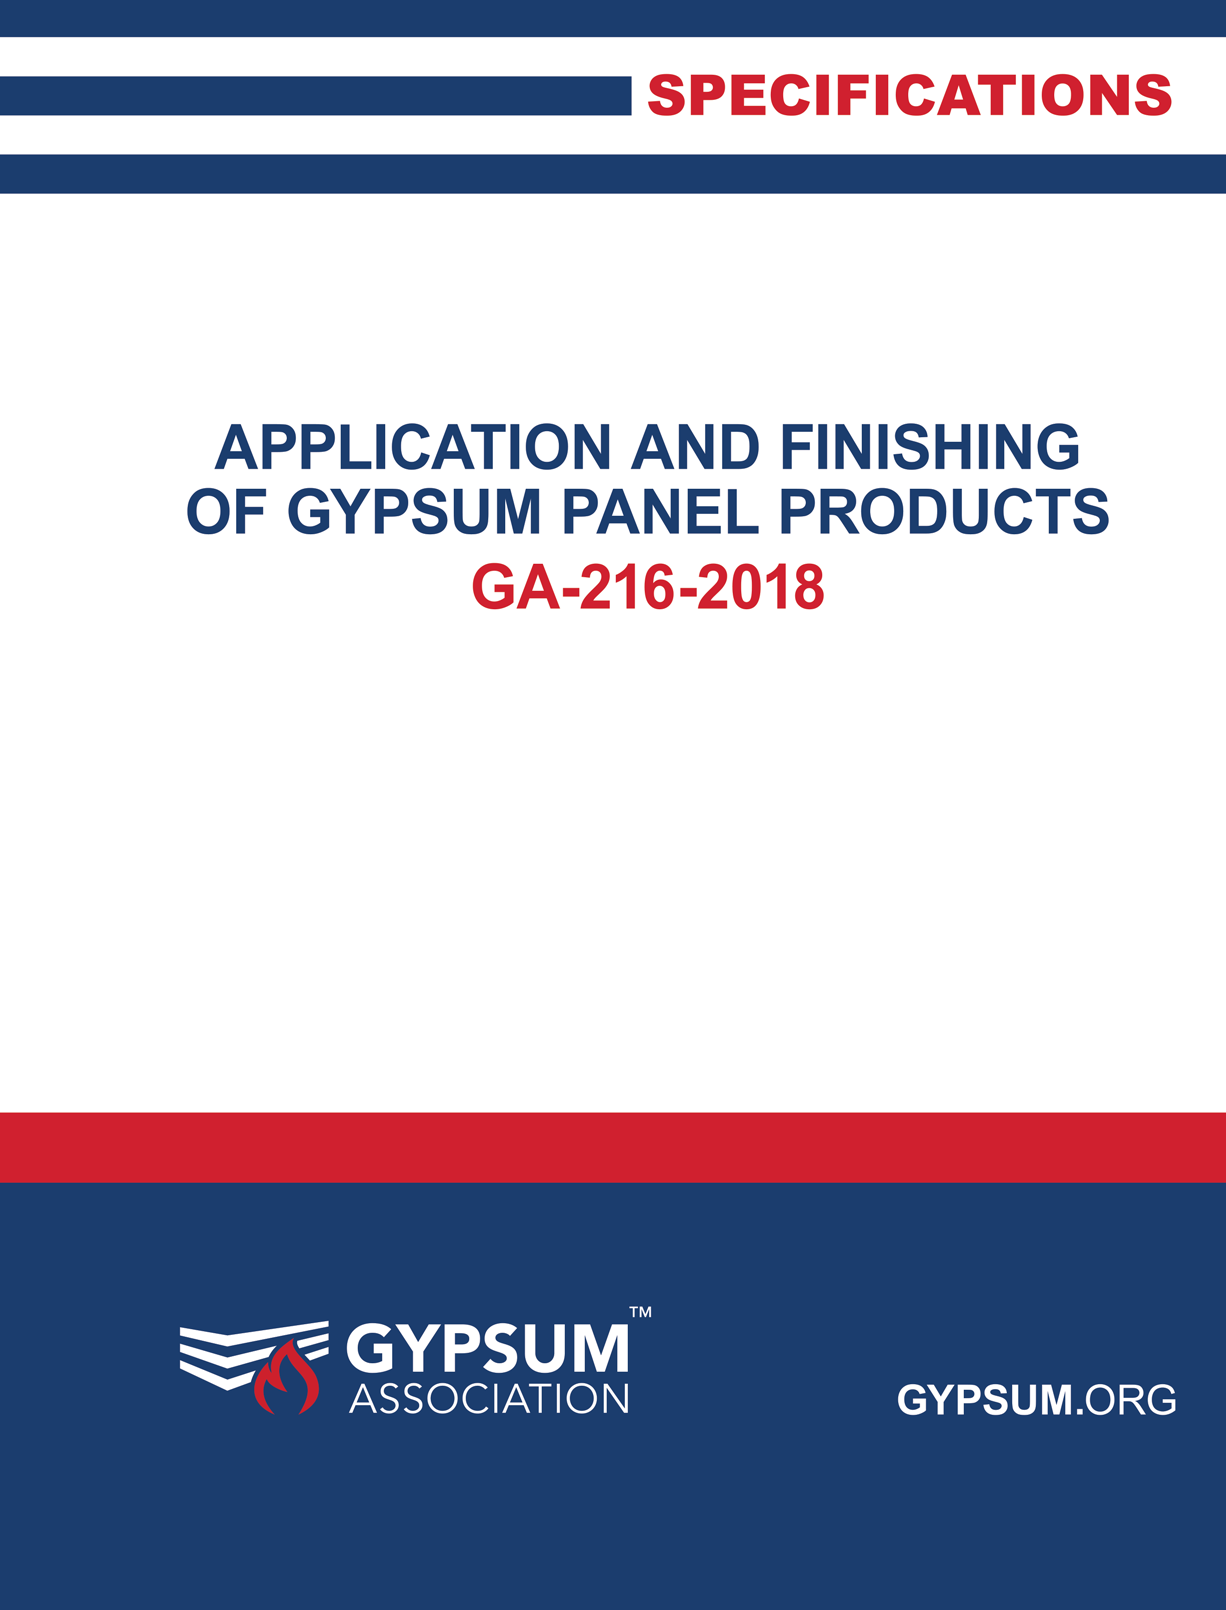 GA-216-2018 Application and Finishing of Gypsum Panel Products